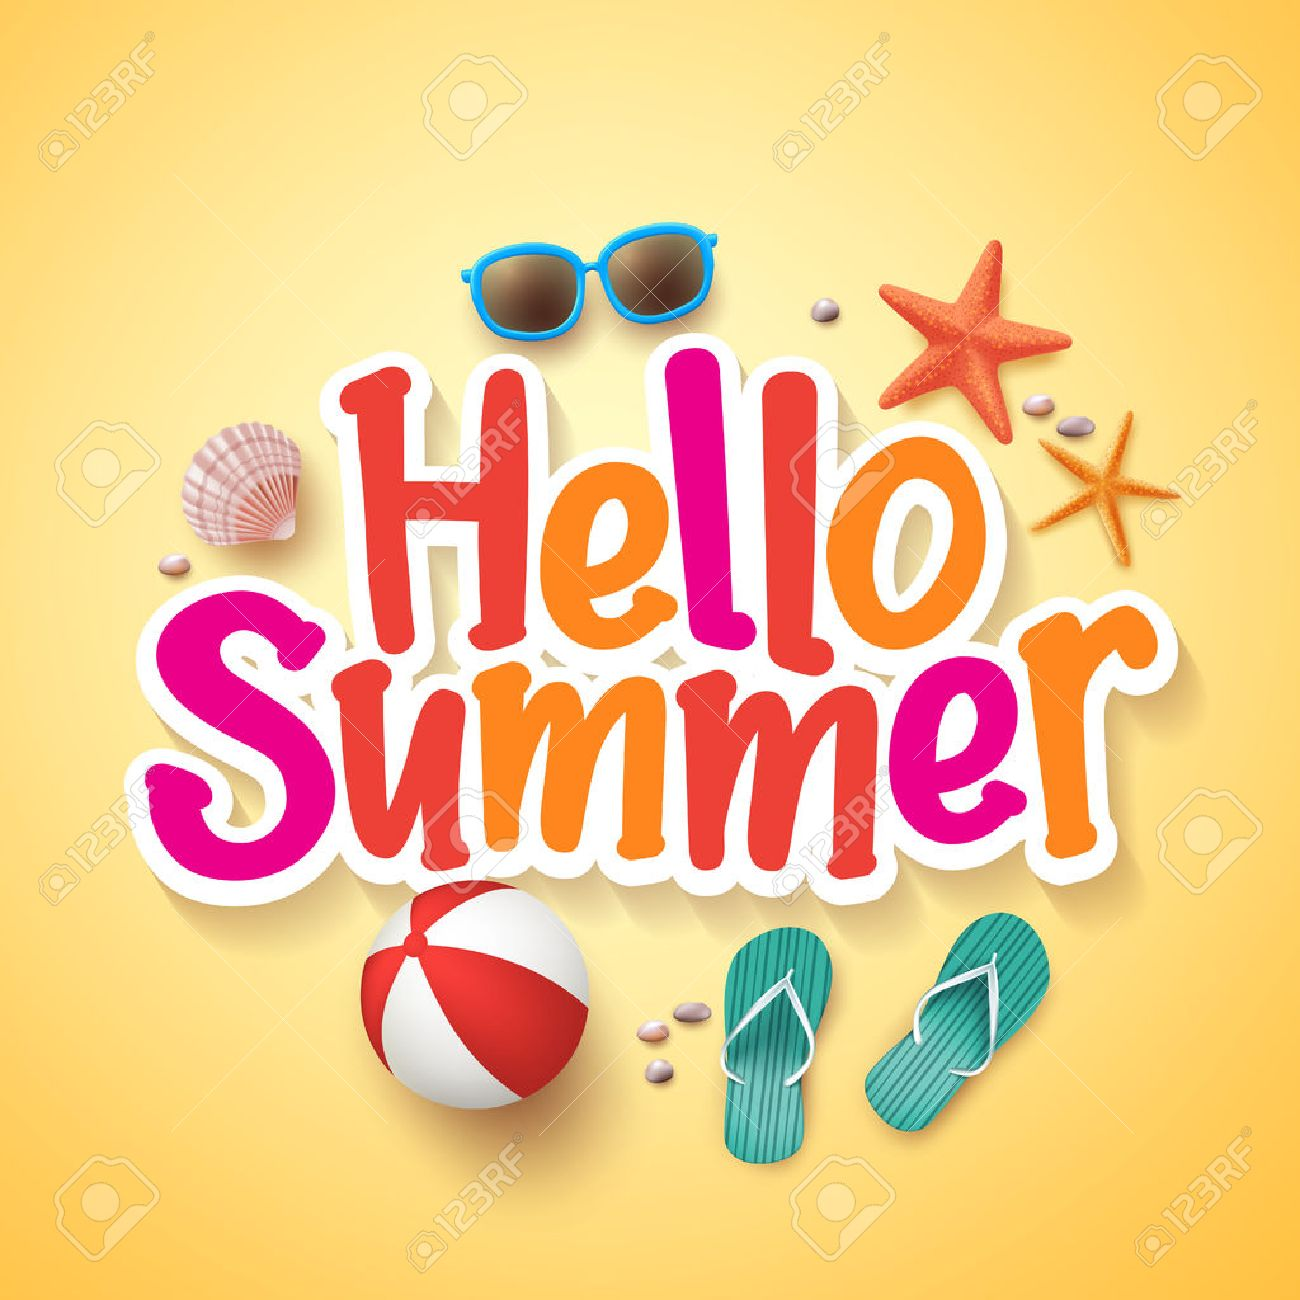 Hello Summer Text Title Poster Design with Realistic 3D Vector Elements and Decorations in Yellow Background. Vector Illustration - 52478191